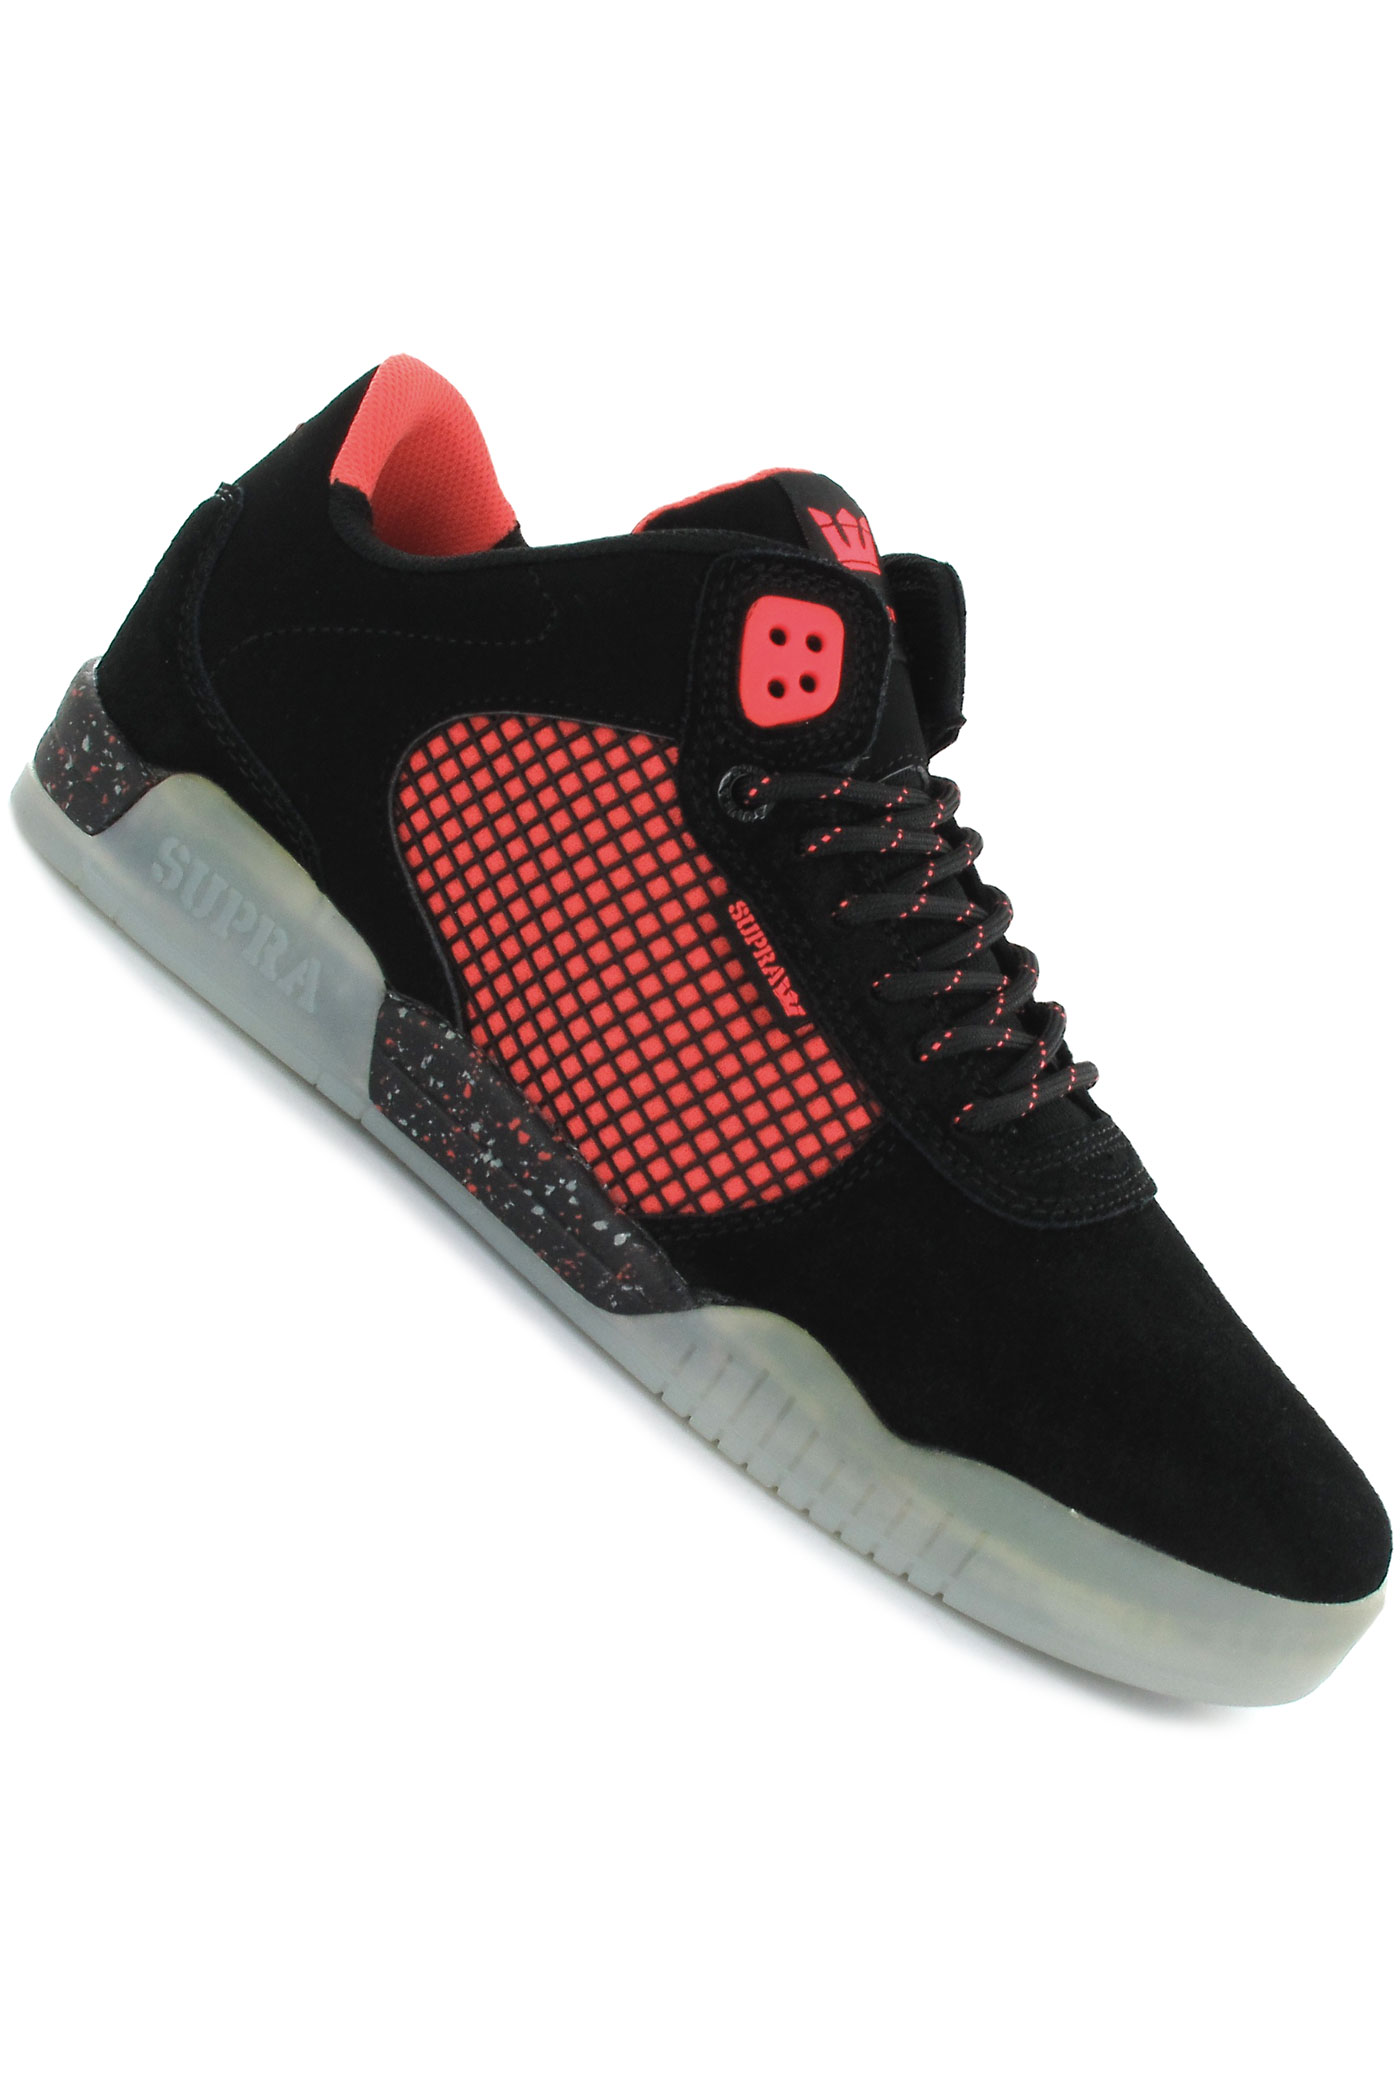 Home Page » Shoes » Skateboard shoes and Sneakers » Supra Erik